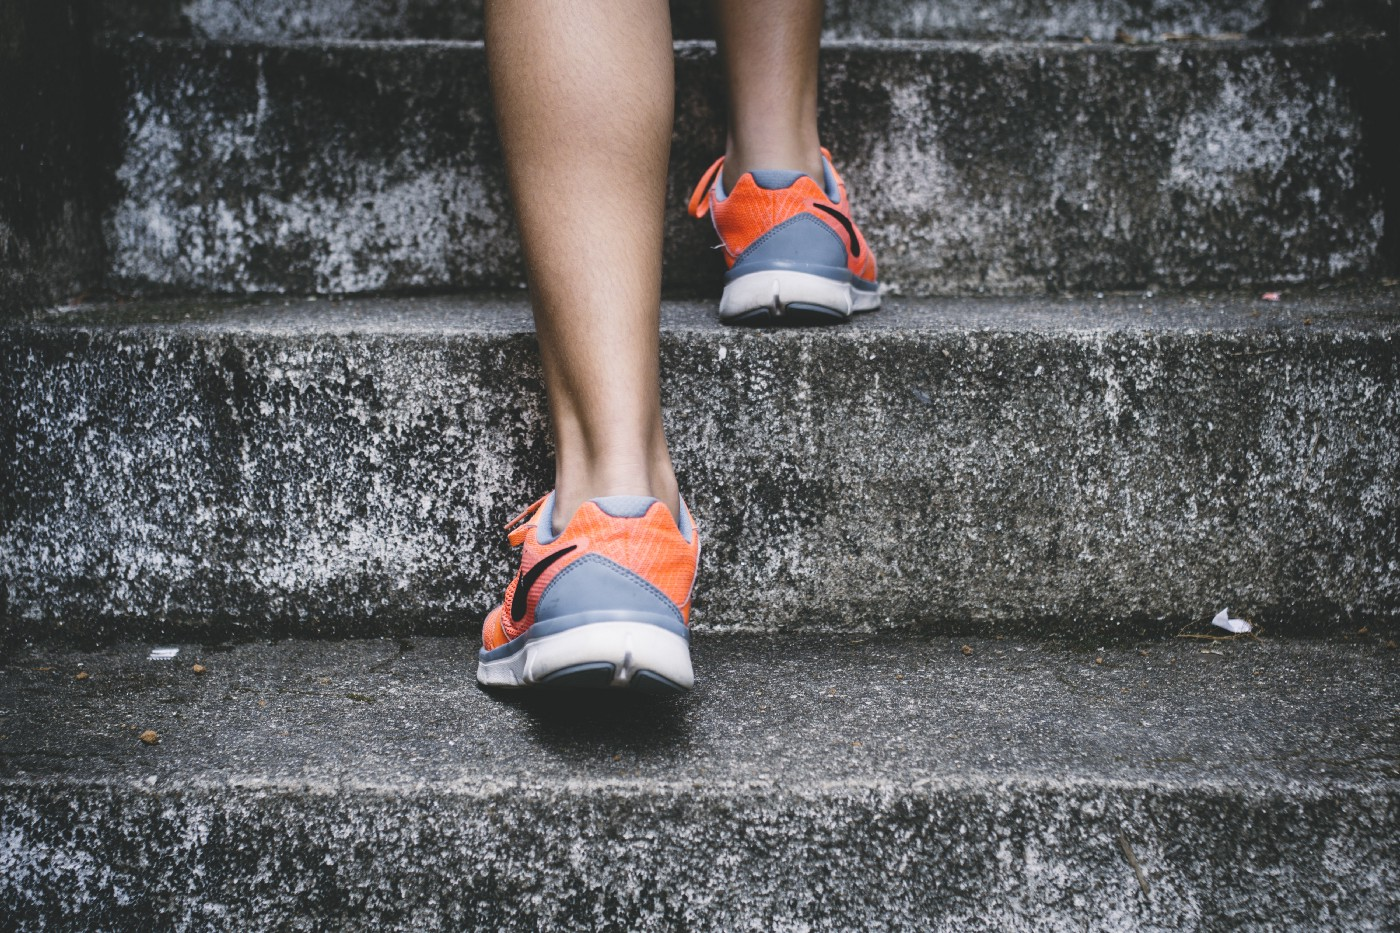 Close-up for female runner's legs as she goes up stairs